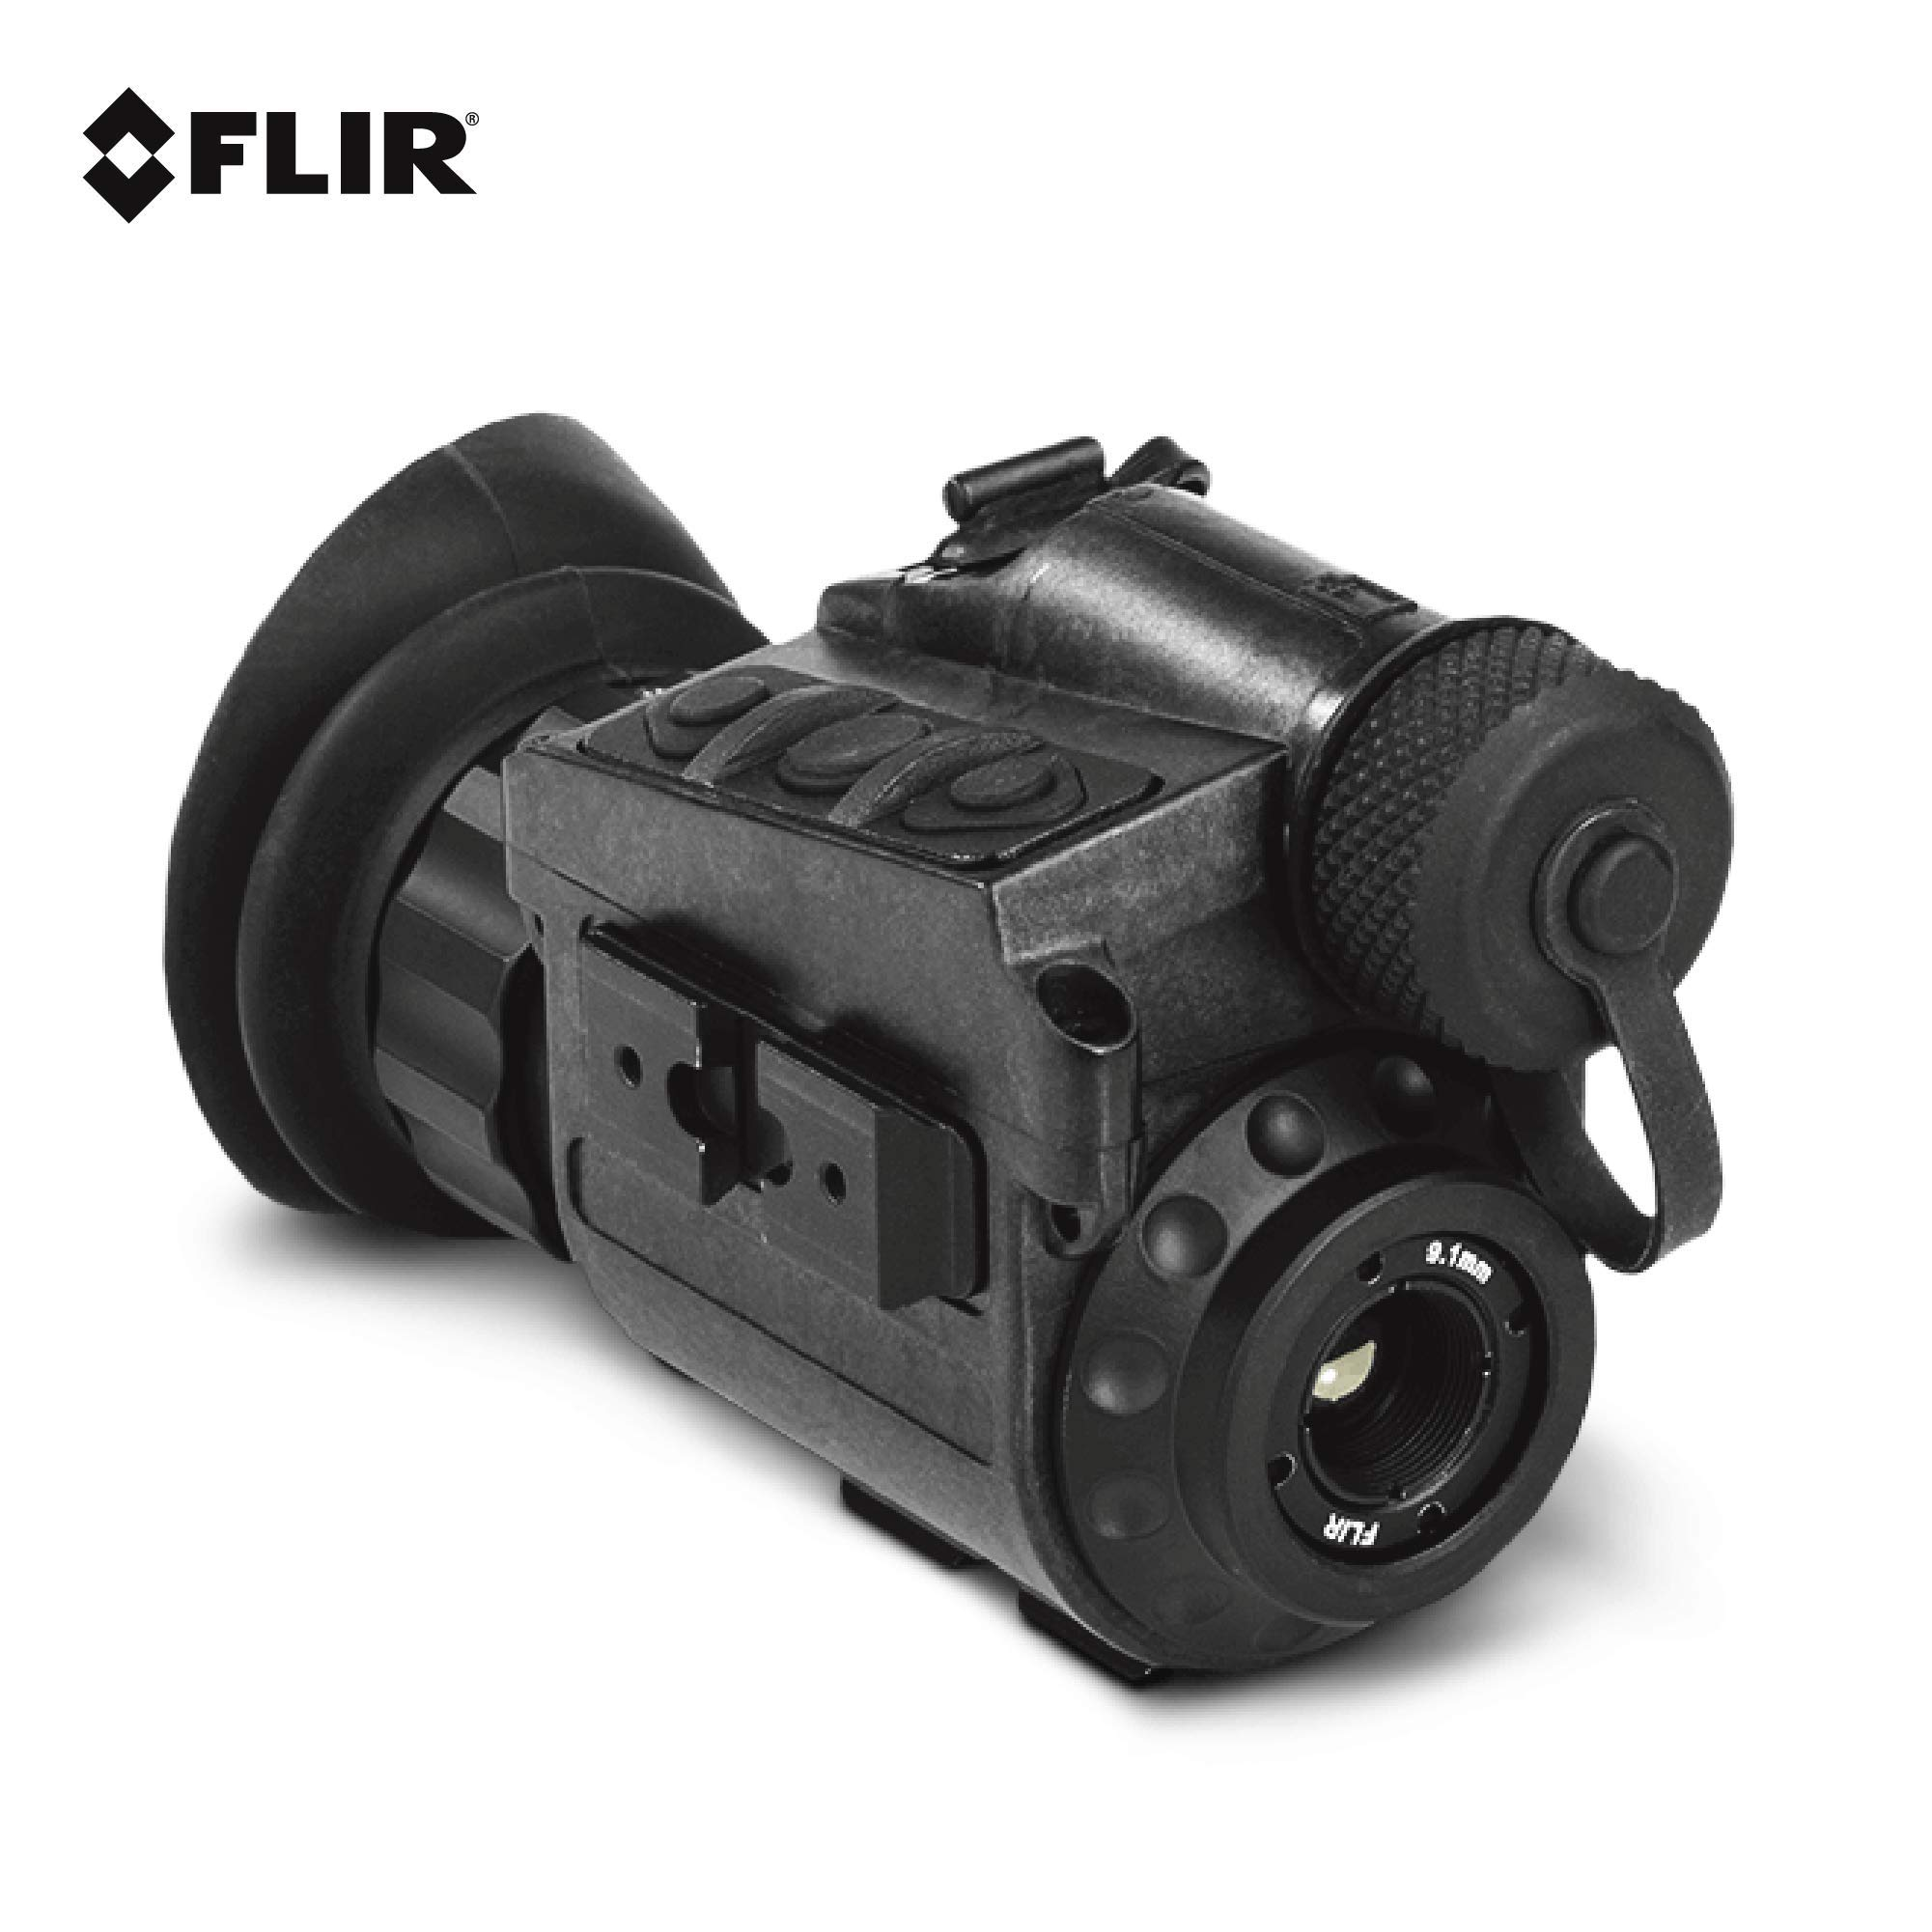 FLIR Breach PTQ136 Multi-Purpose Thermal Monocular by FLIR